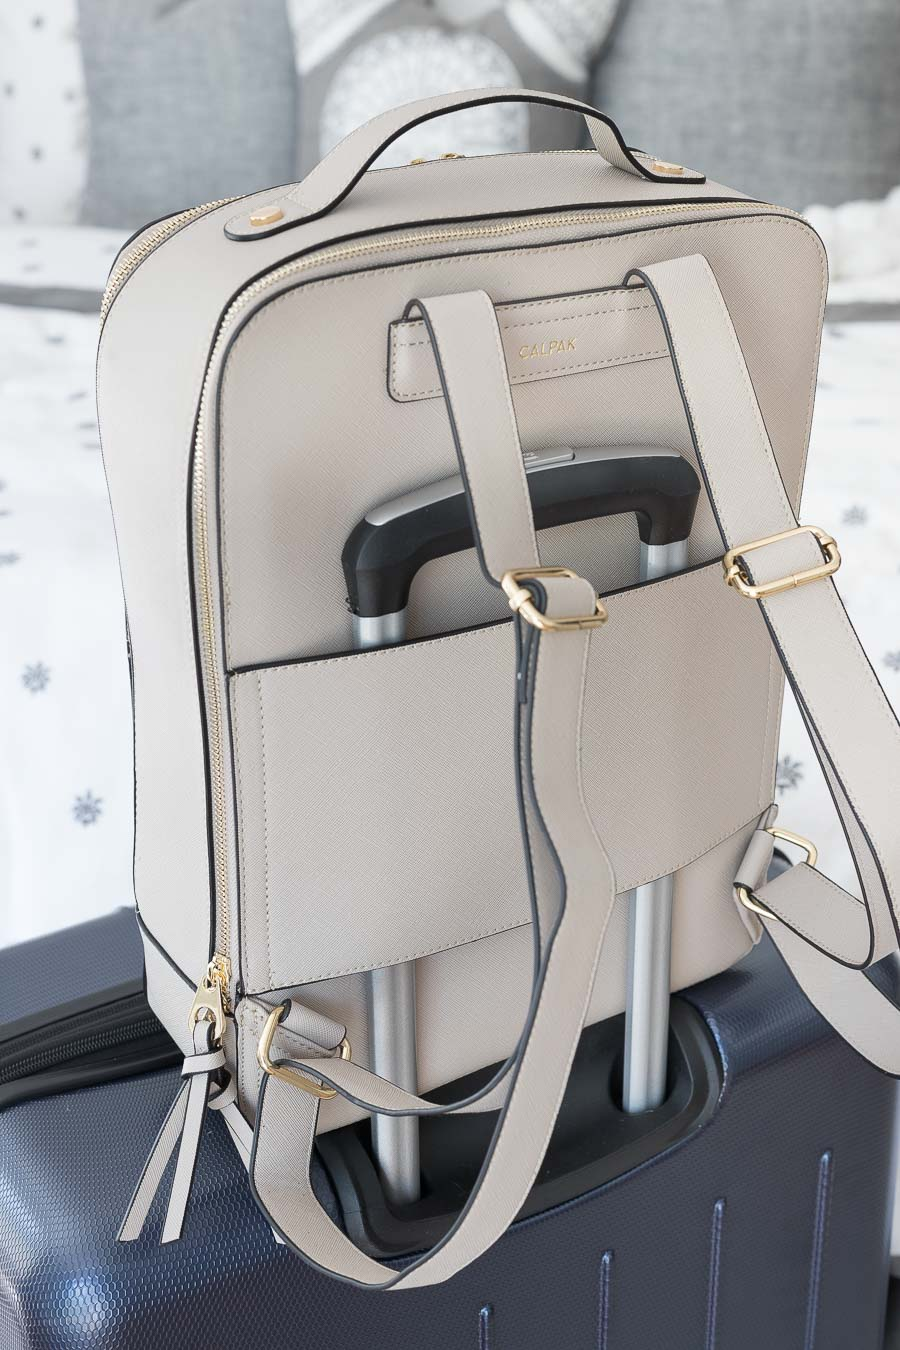 This travel backpack hooks onto the handle of your suitcase!